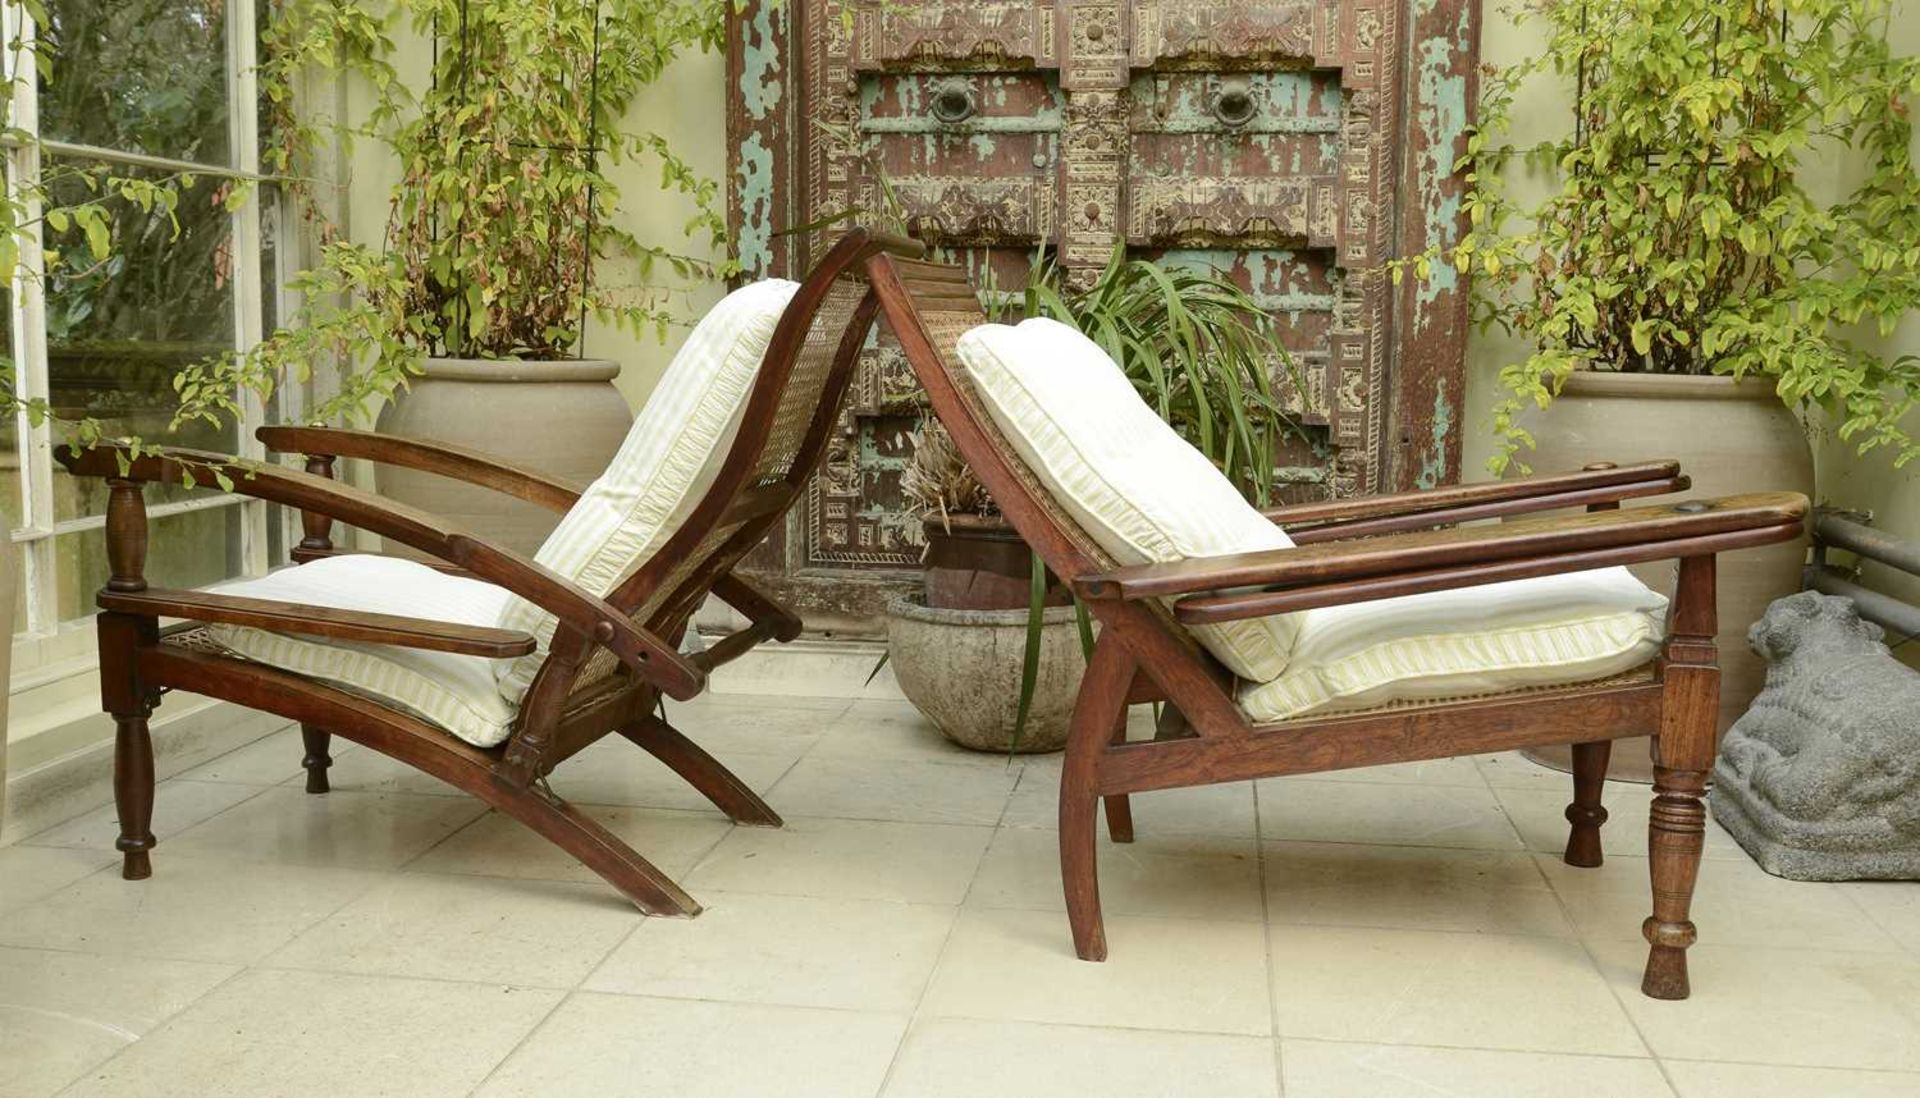 Two similar teak planter's chairs, - Image 4 of 4